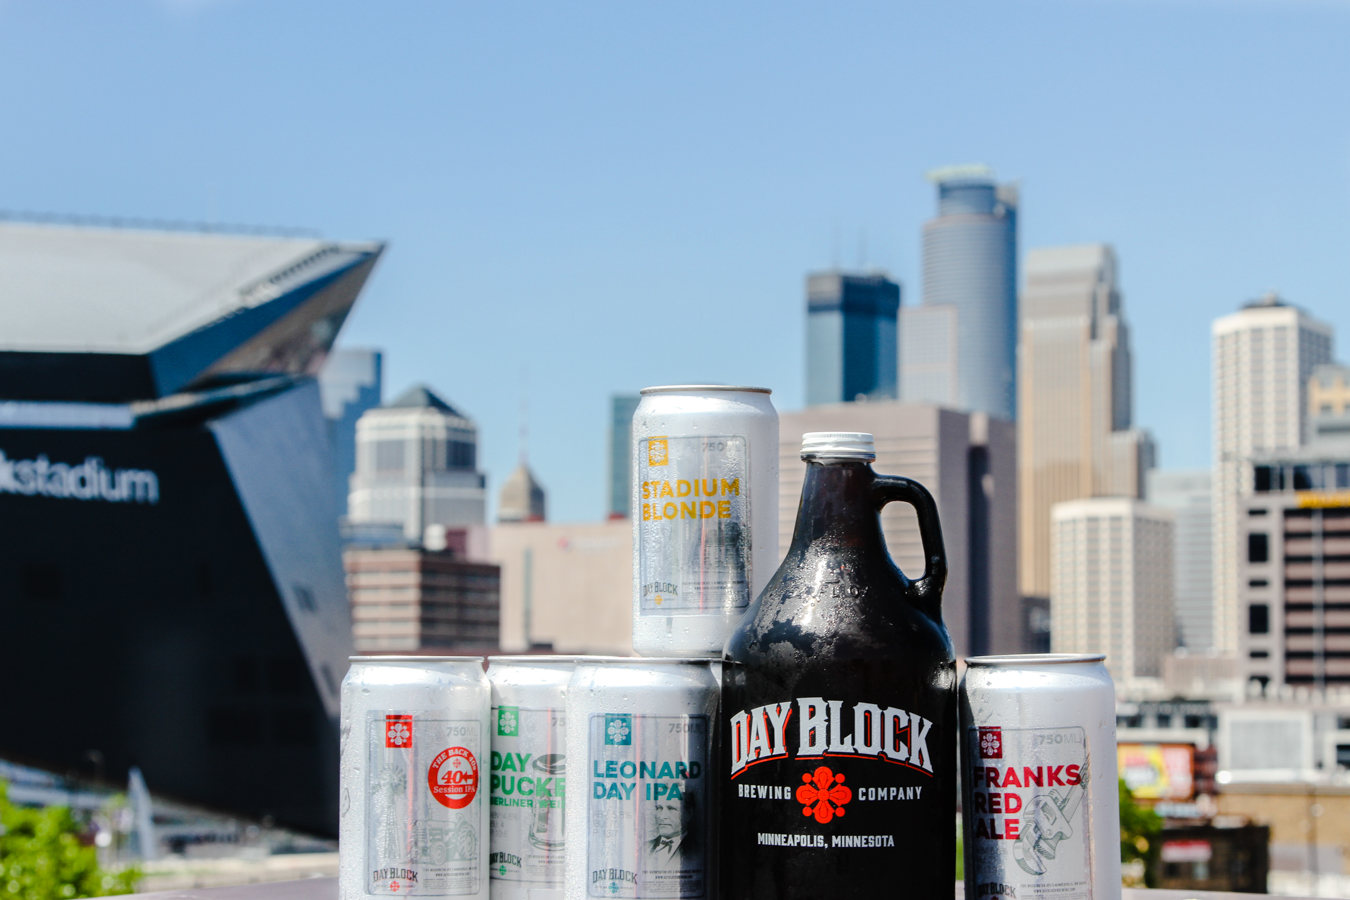 day block brewing company's growlers and crowlers